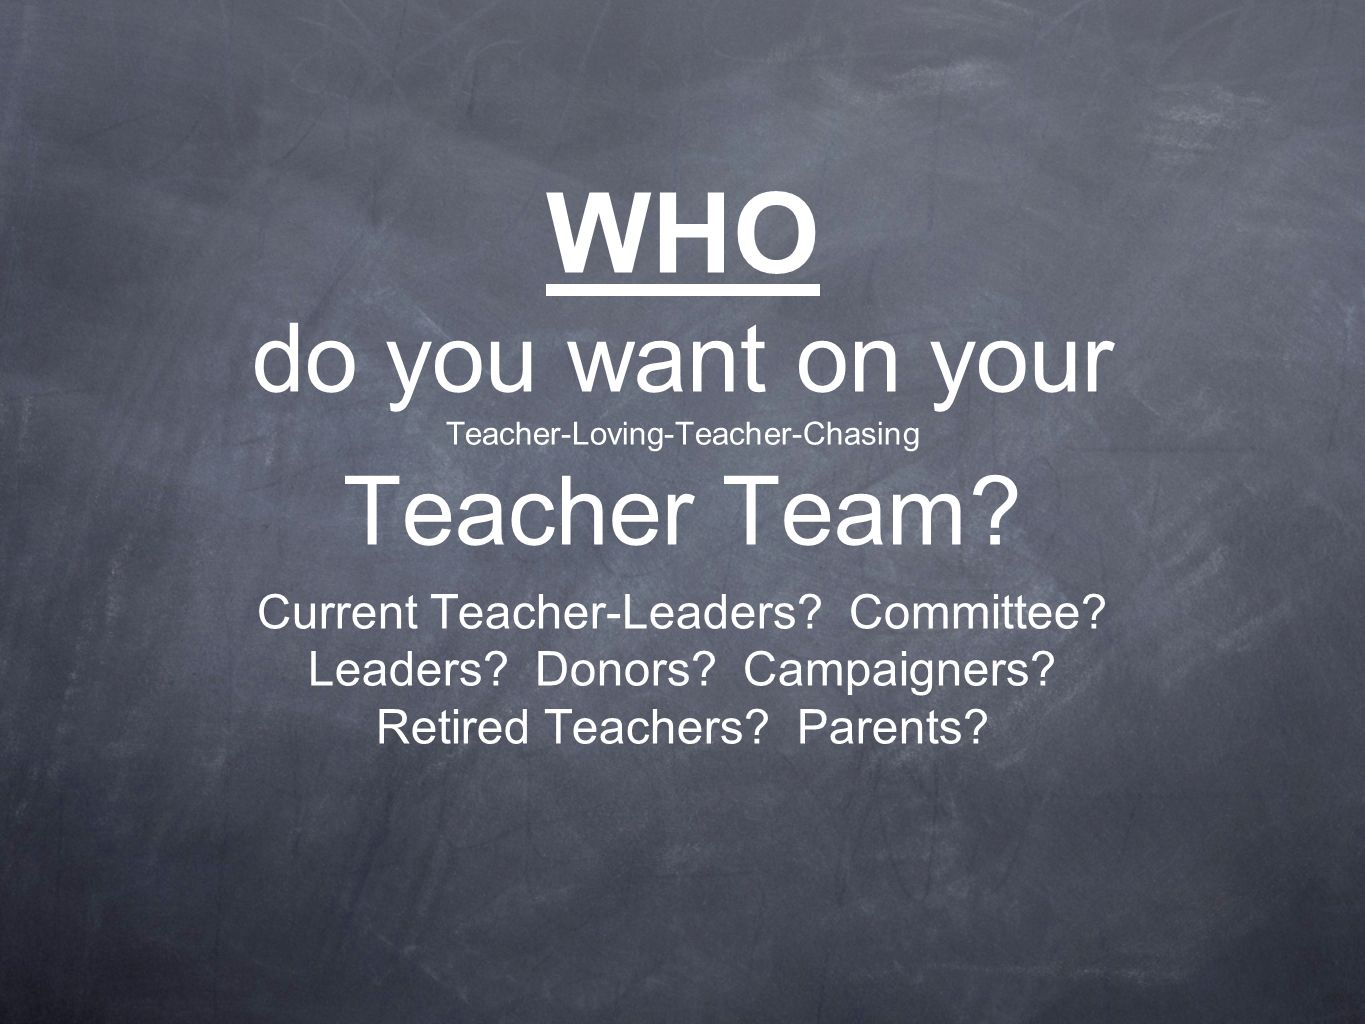 WHO do you want on your Teacher-Loving-Teacher-Chasing Teacher Team.